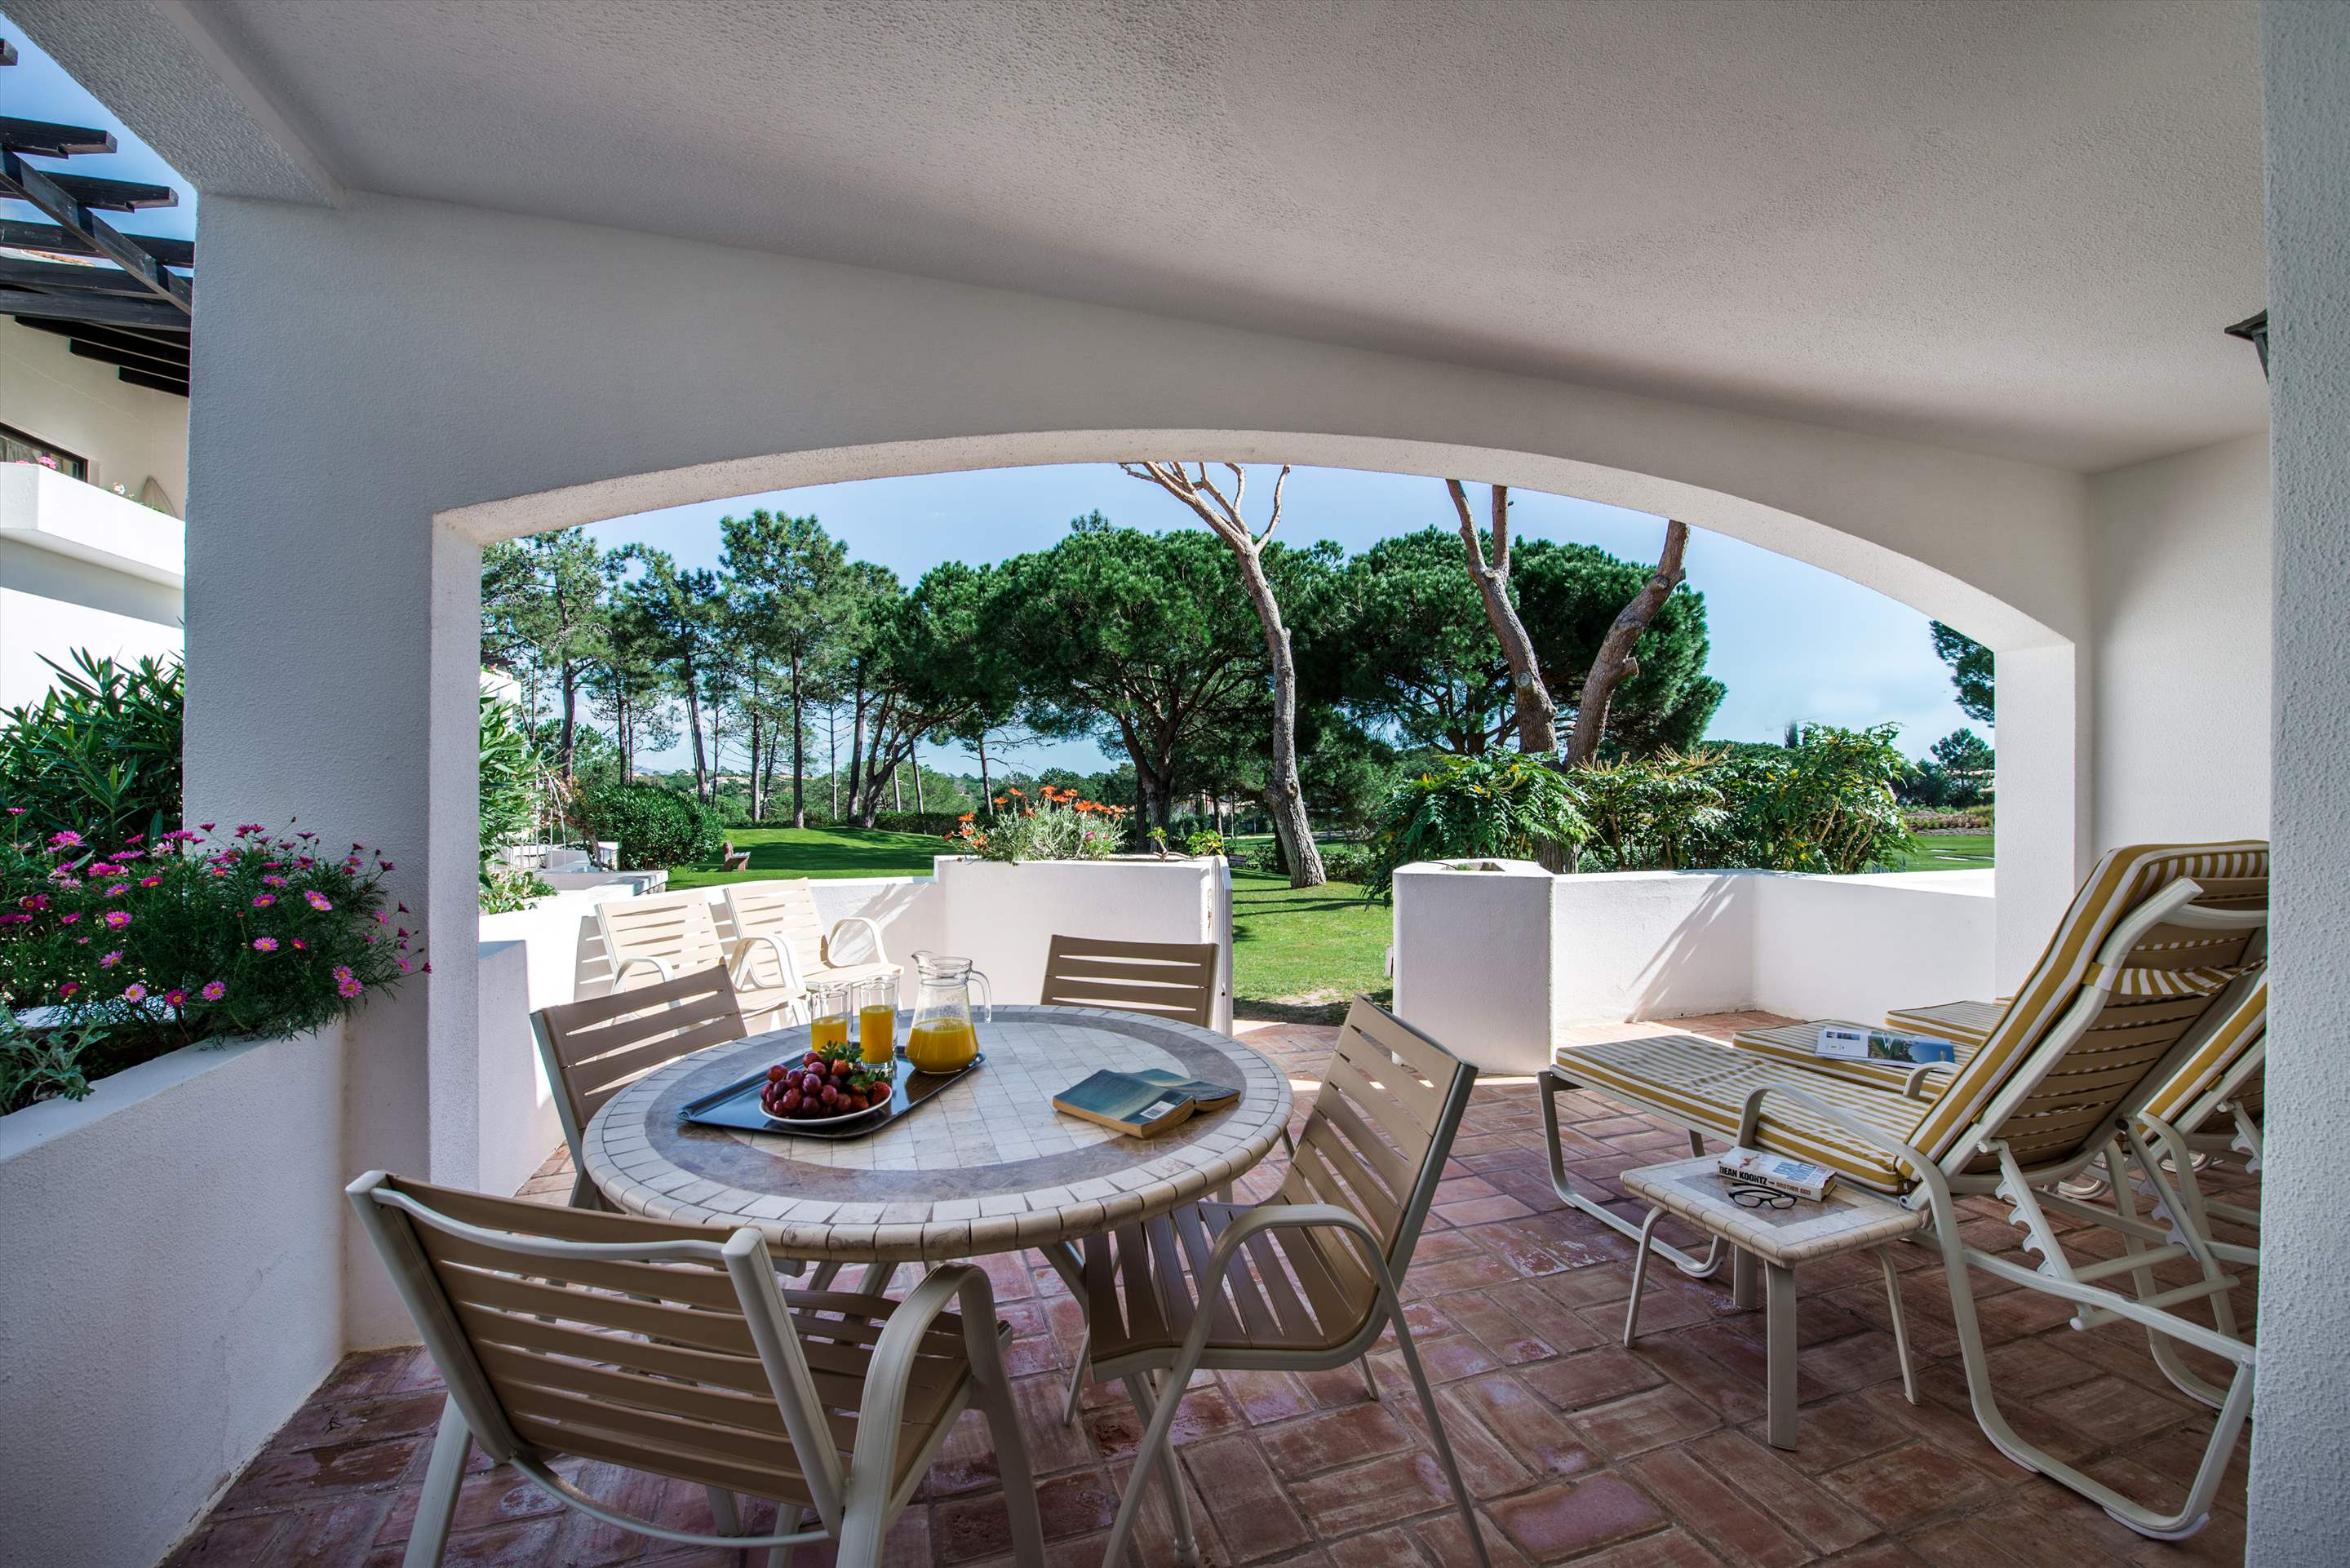 Four Seasons Country Club 1 bed, Superior - Thursday Arrival, 1 bedroom apartment in Four Seasons Country Club, Algarve Photo #2